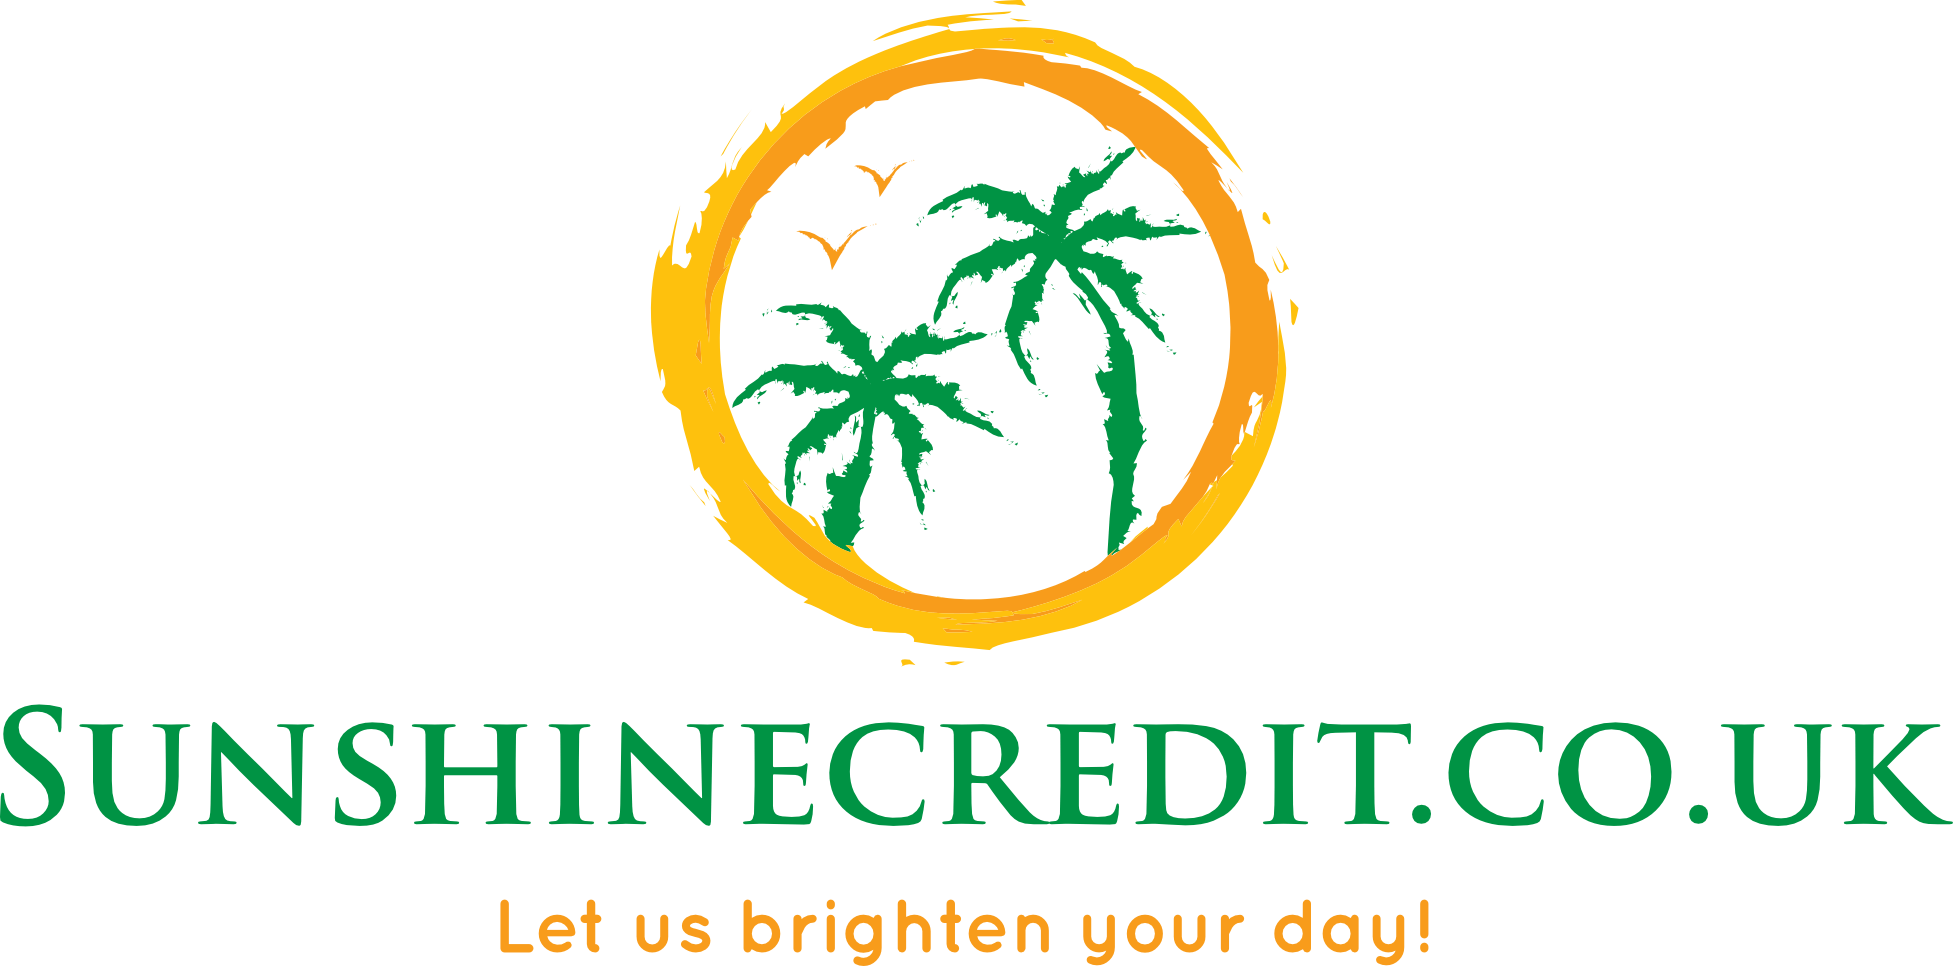 Sunshinecredit.co.uk